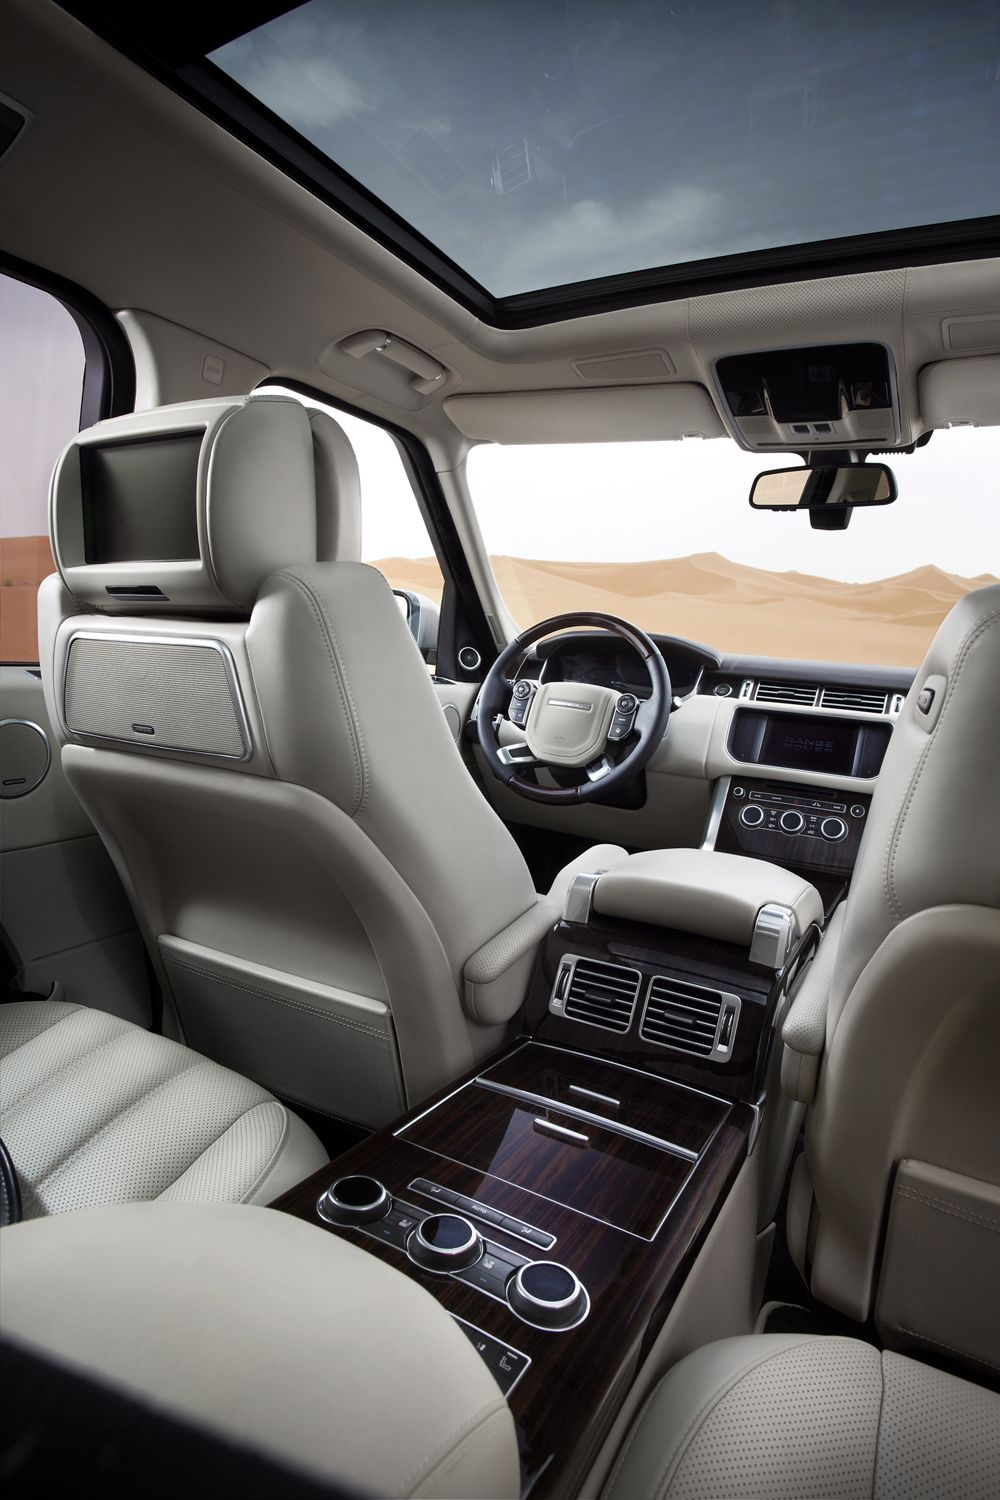 Best 25 range rover interior ideas only on pinterest land rover sport dream cars and range rover evoque interior